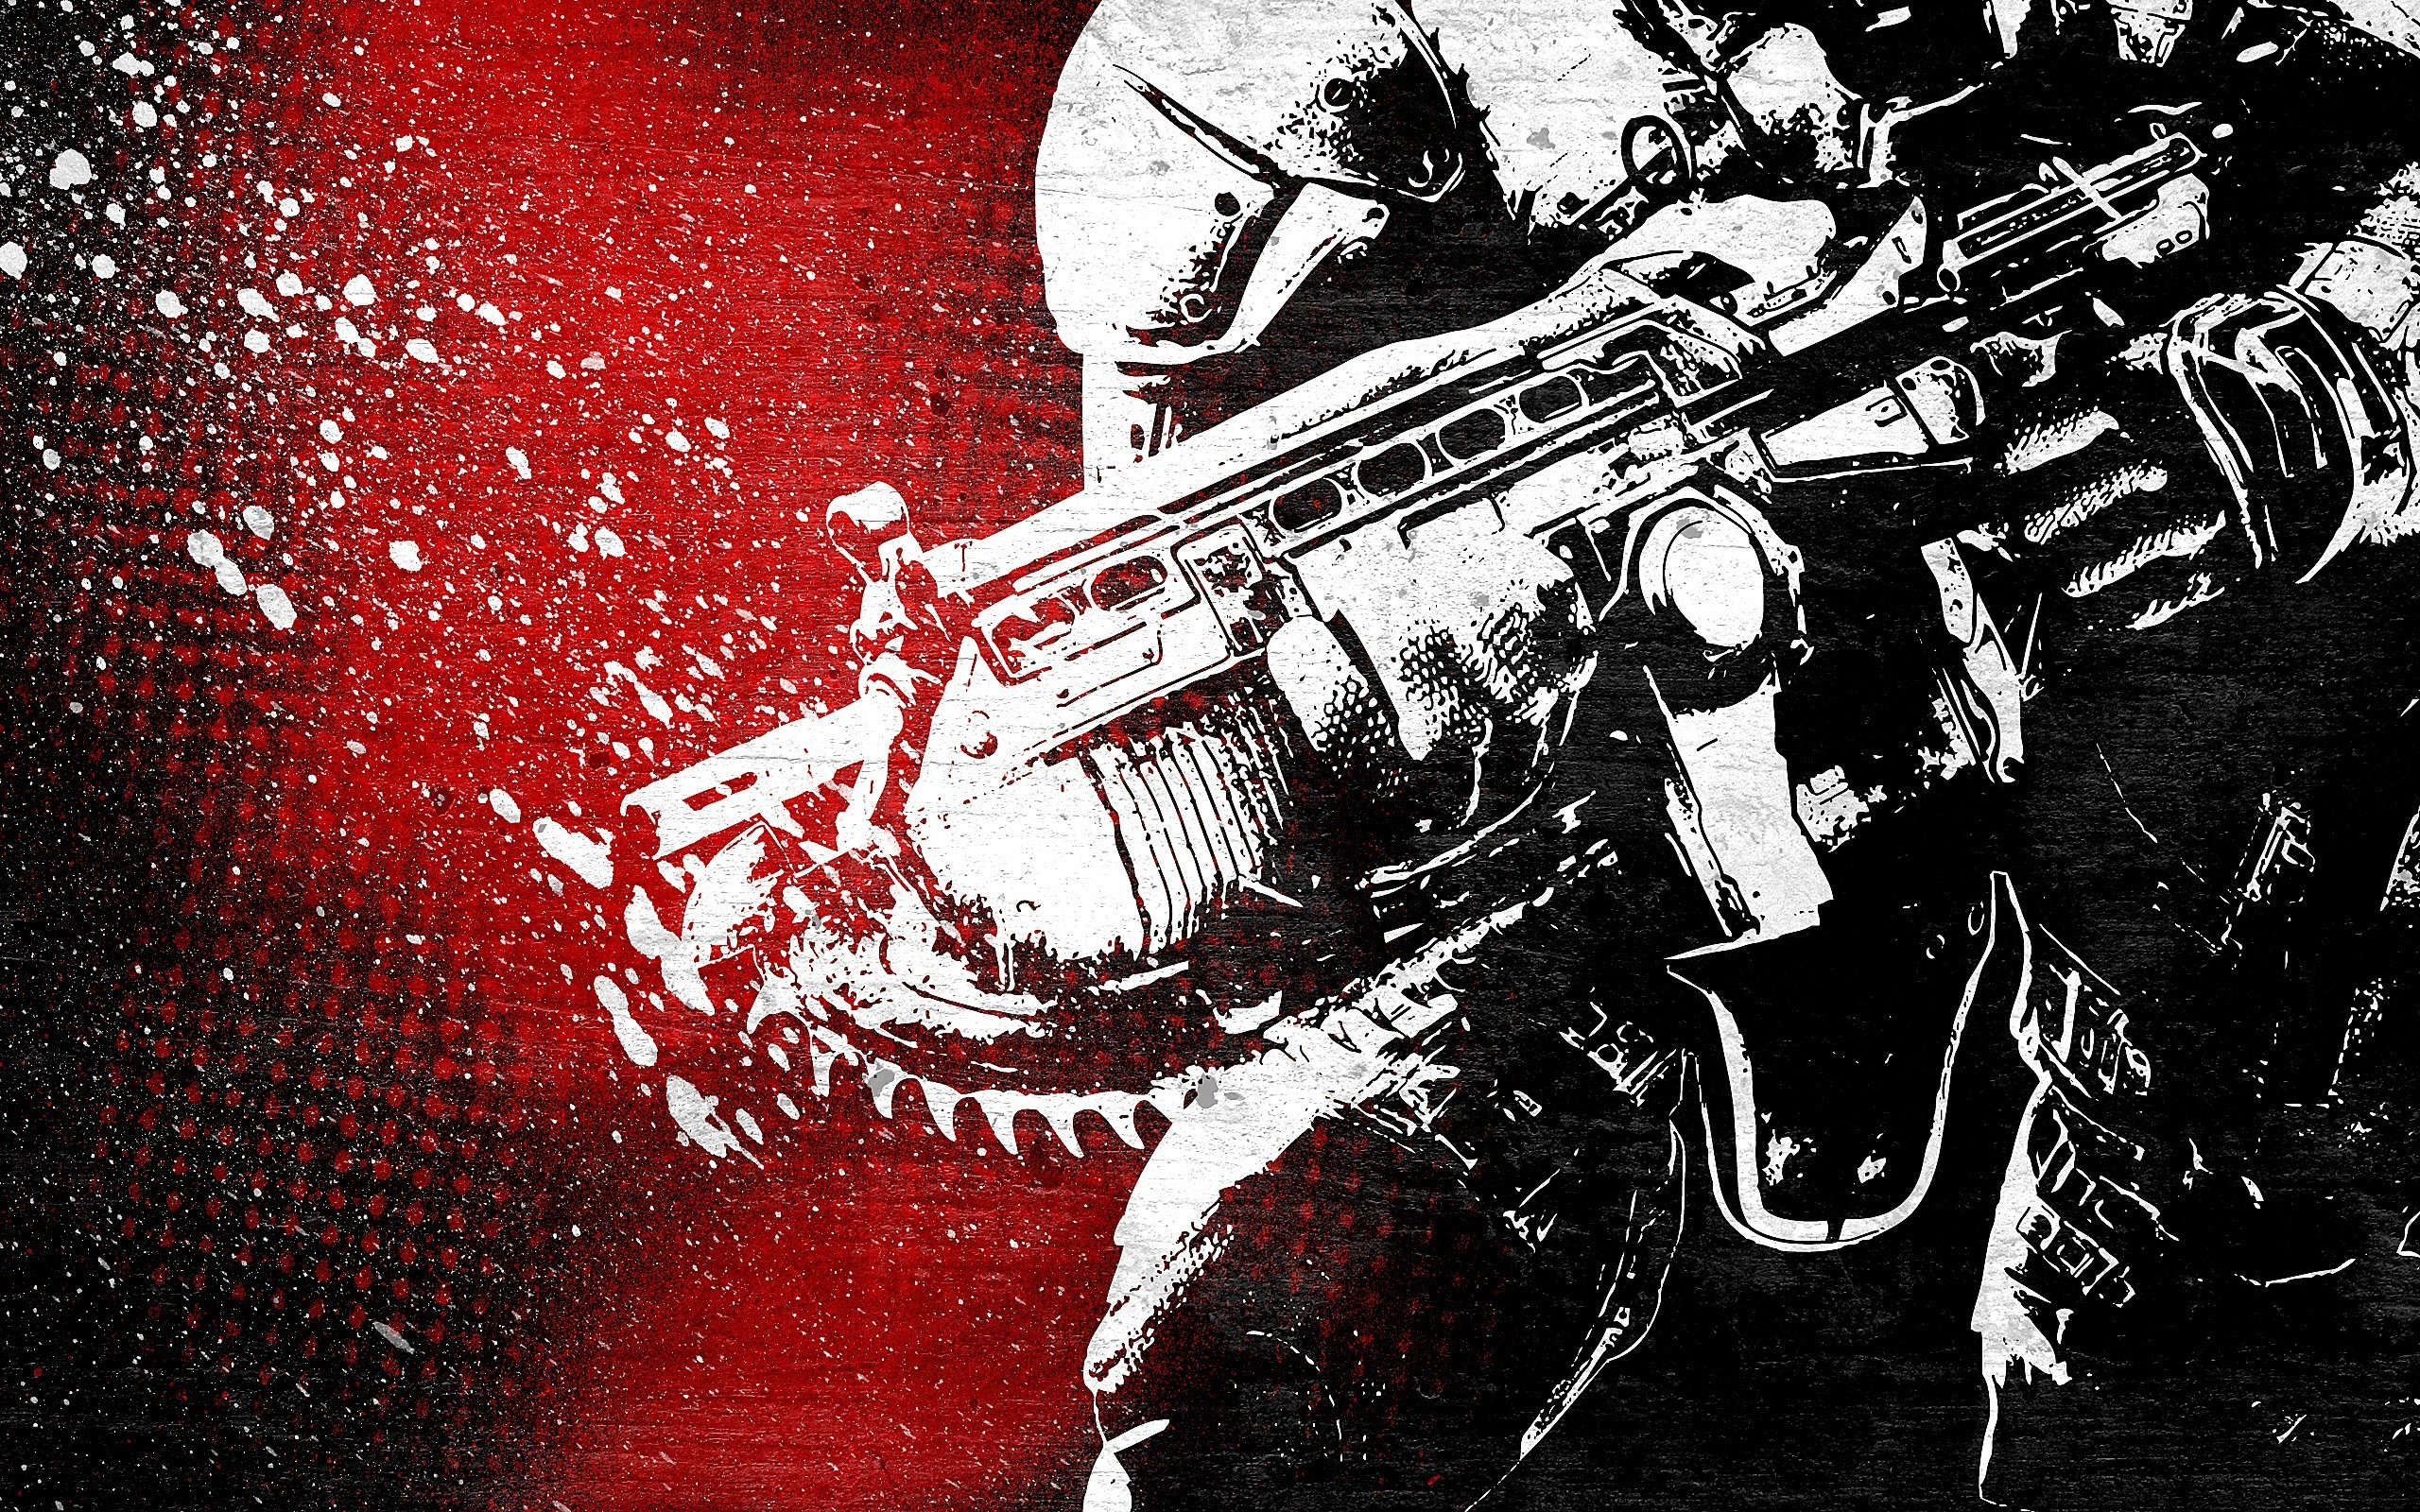 Gears of War Background (76+ images)